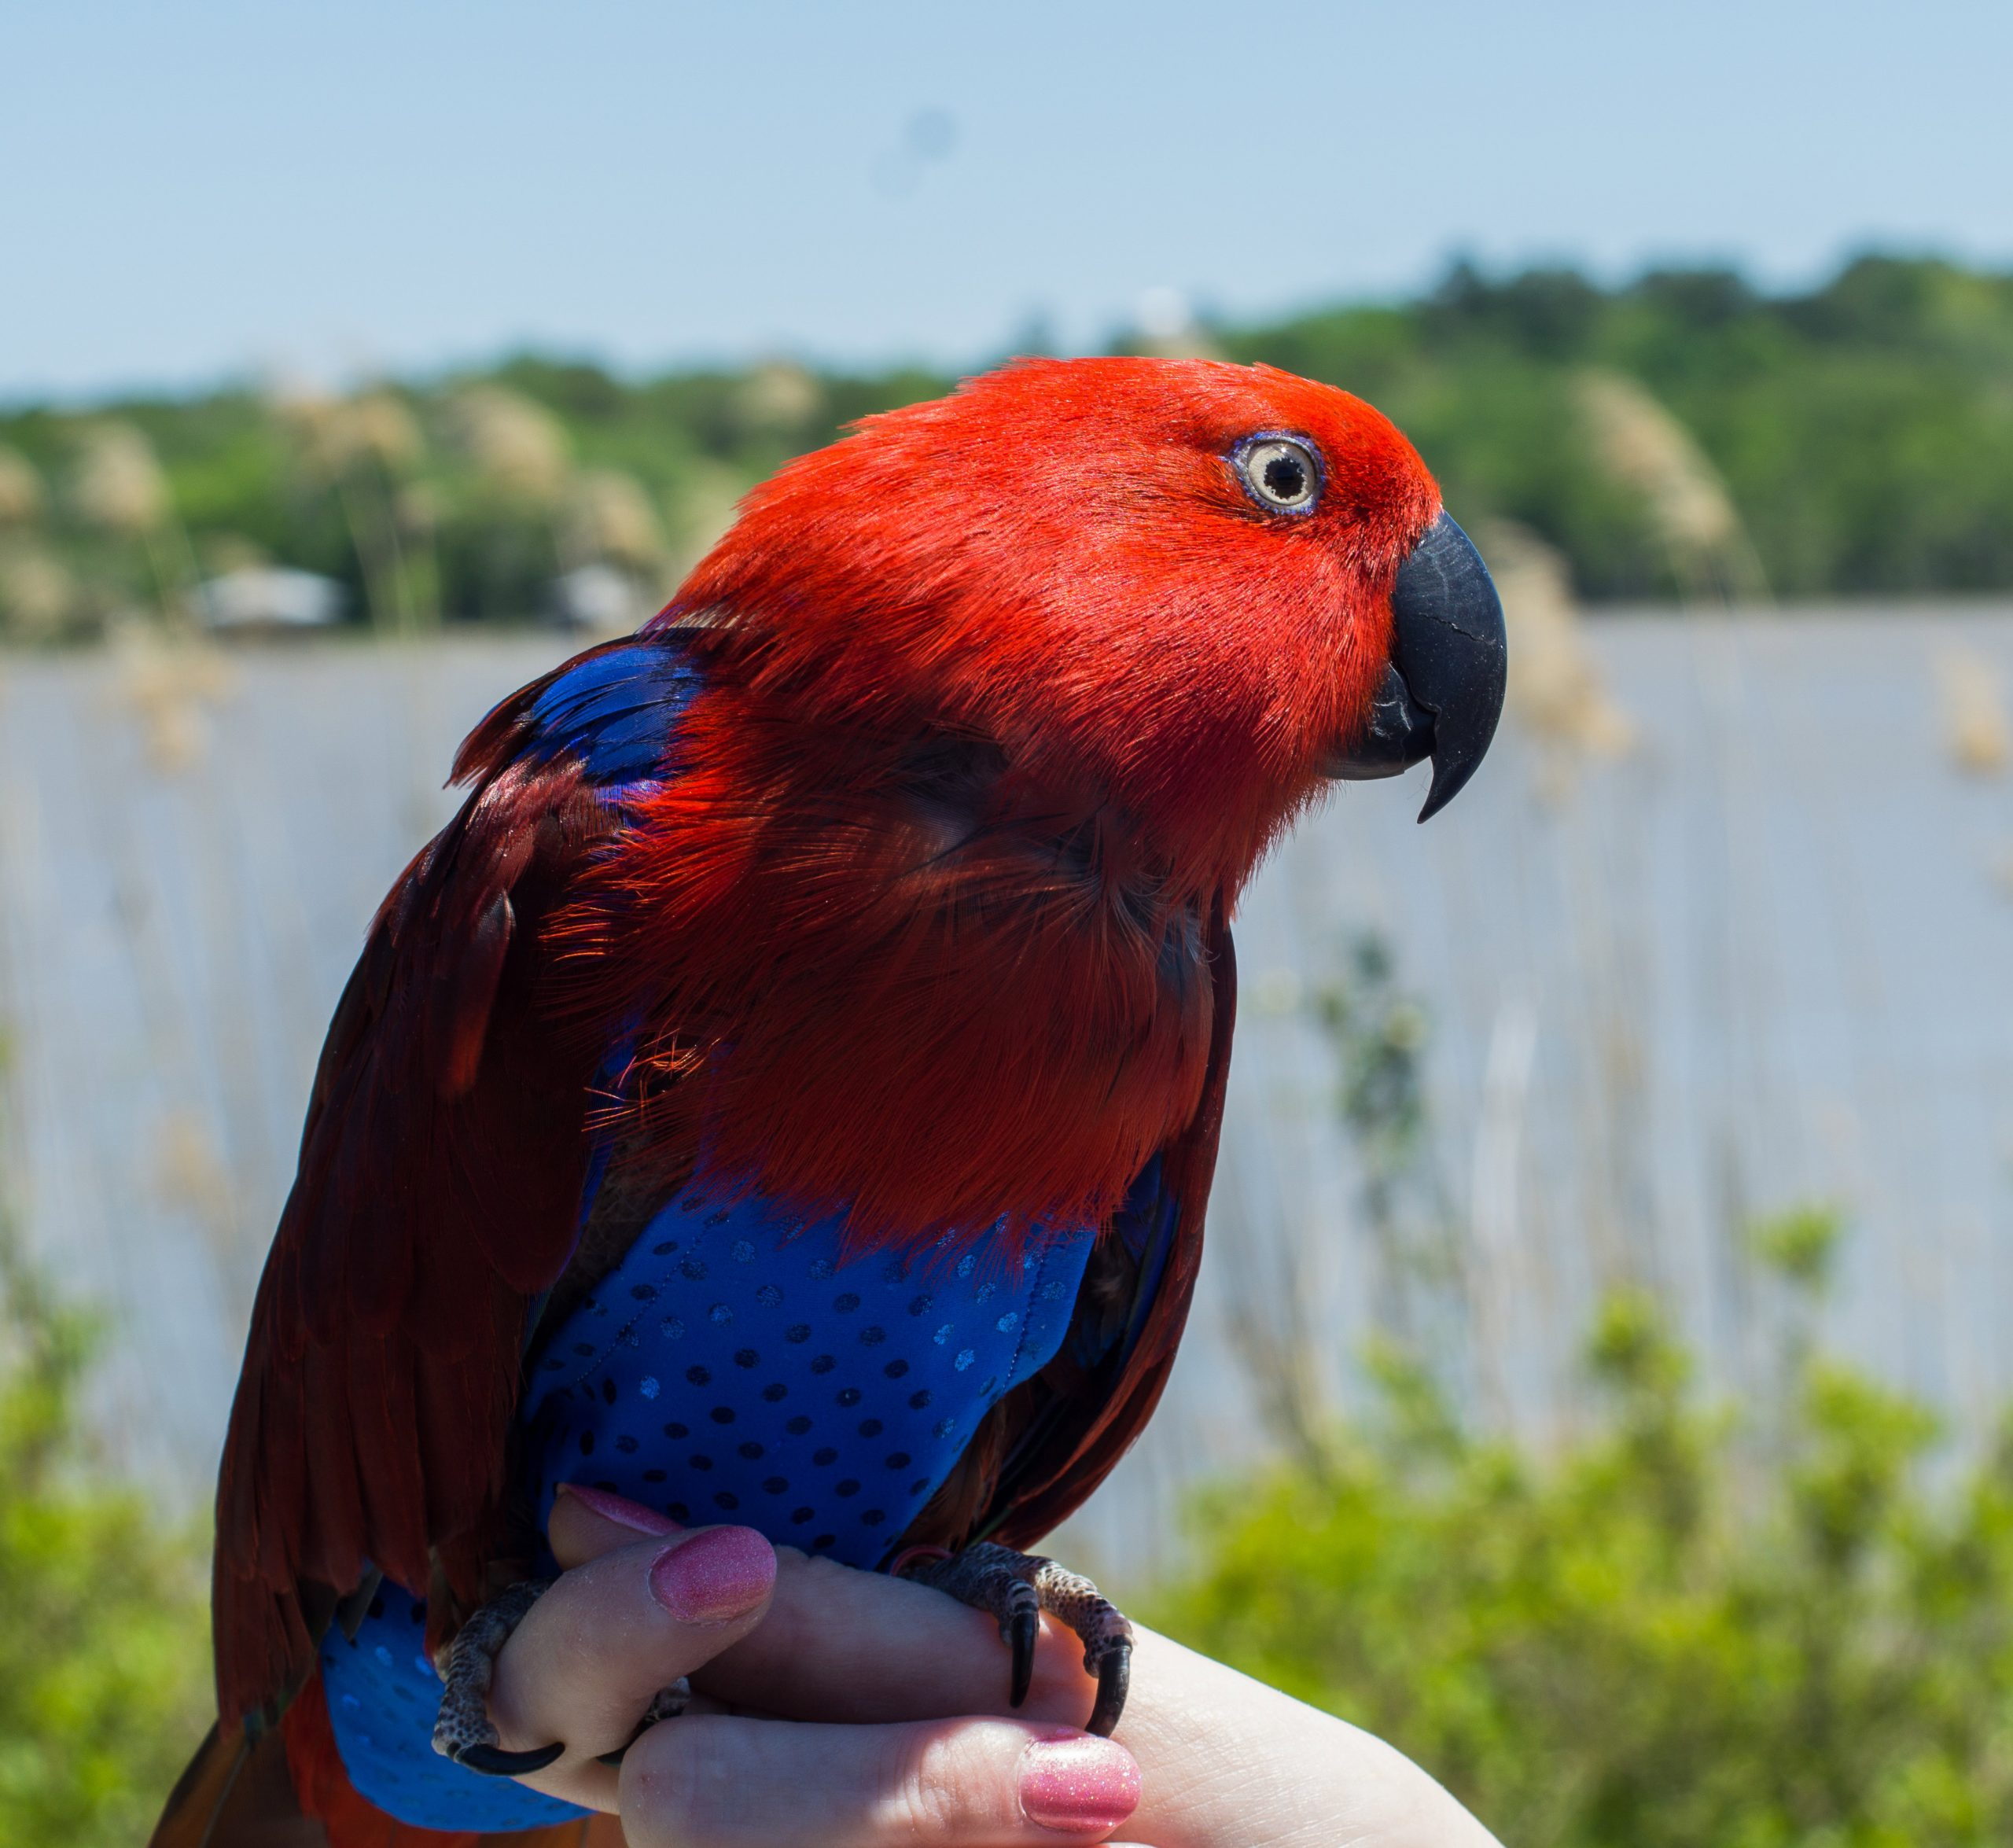 Parrot by the bay